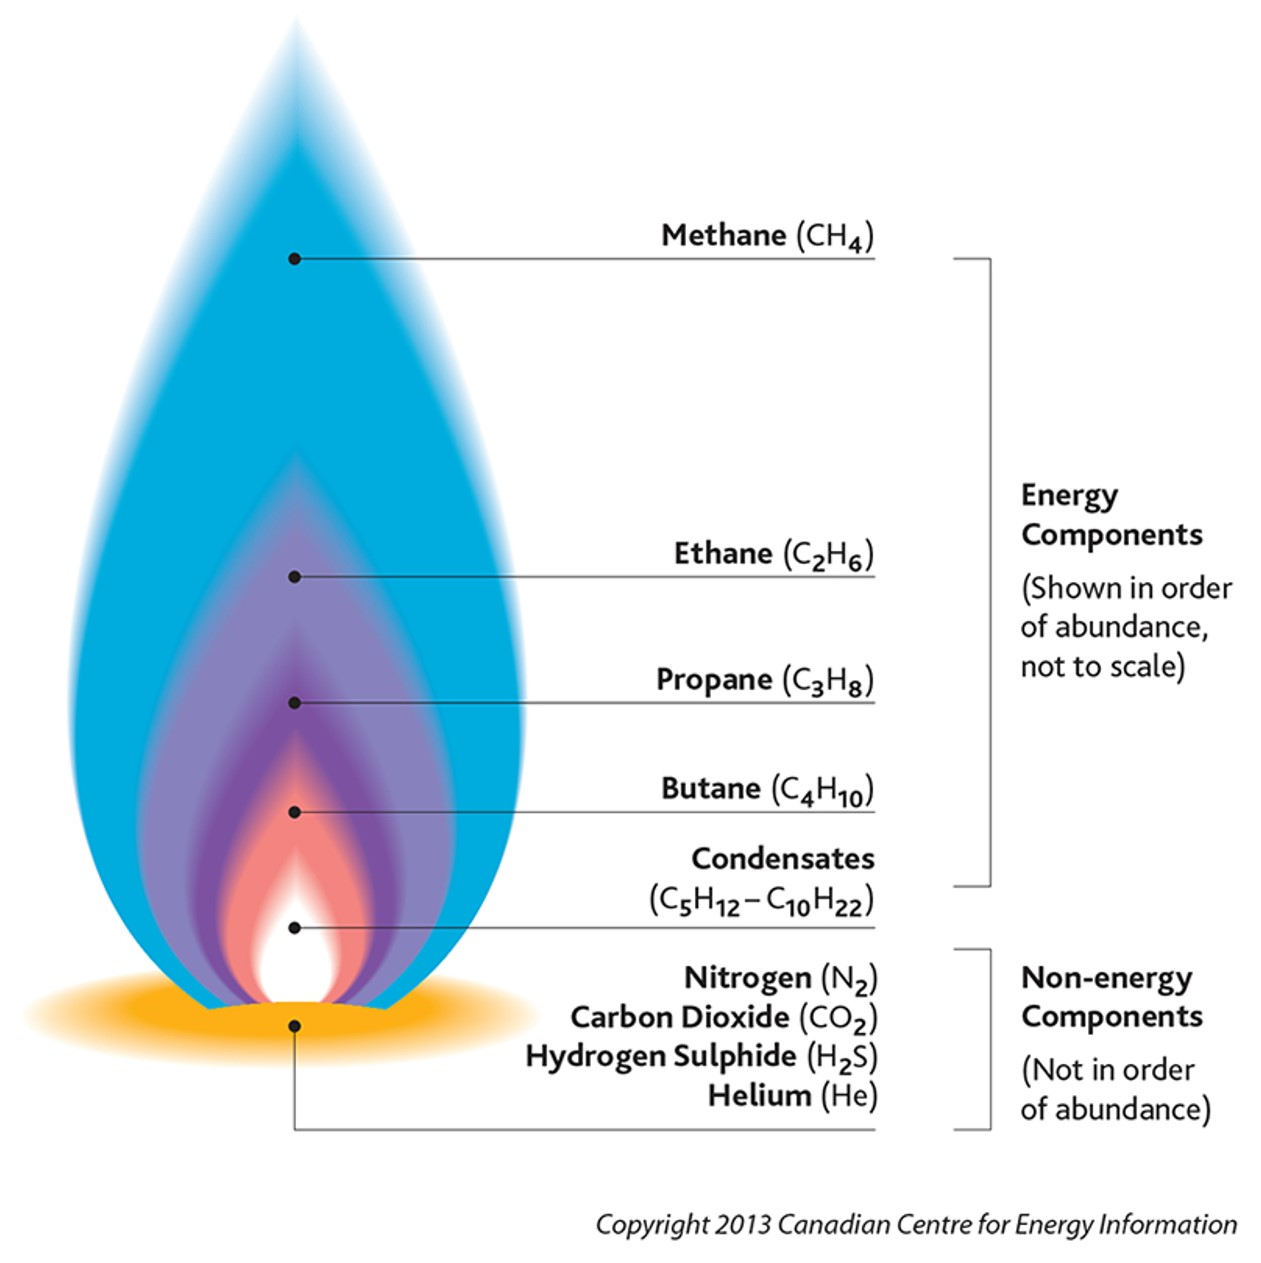 Visual representation of the components of raw natural gas